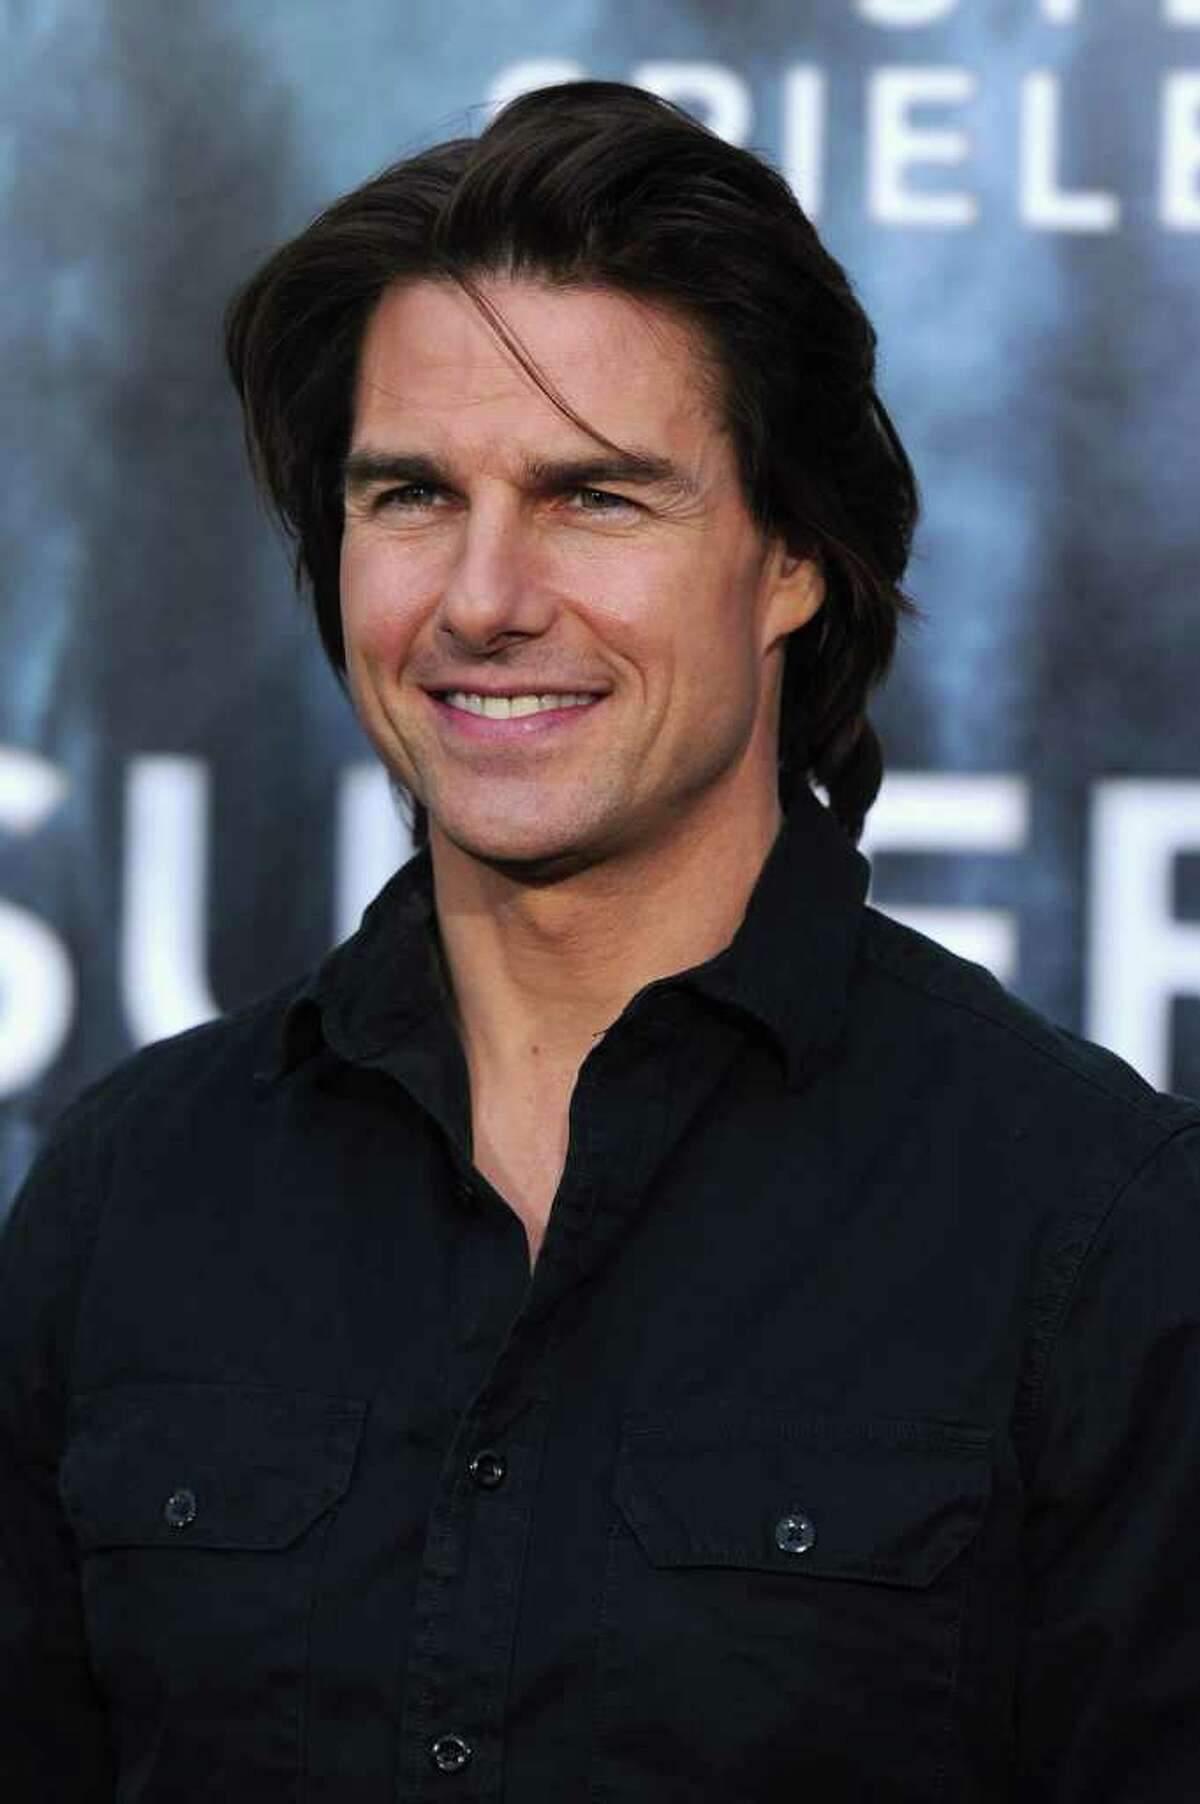 Tom Cruise played good Samaritan several times in 1996. After witnessing a hit-and-run accident in L.A., he called 911 and stayed with the victim until help arrived. When he found out she had no health insurance, Cruise picked up the $7000 medical bill. Later that year, Cruise and then-wife Nicole Kidman were on their yacht near Capri when they spotted a boat nearby catch fire and sink. The couple was able to rescue all five people aboard the doomed ship.